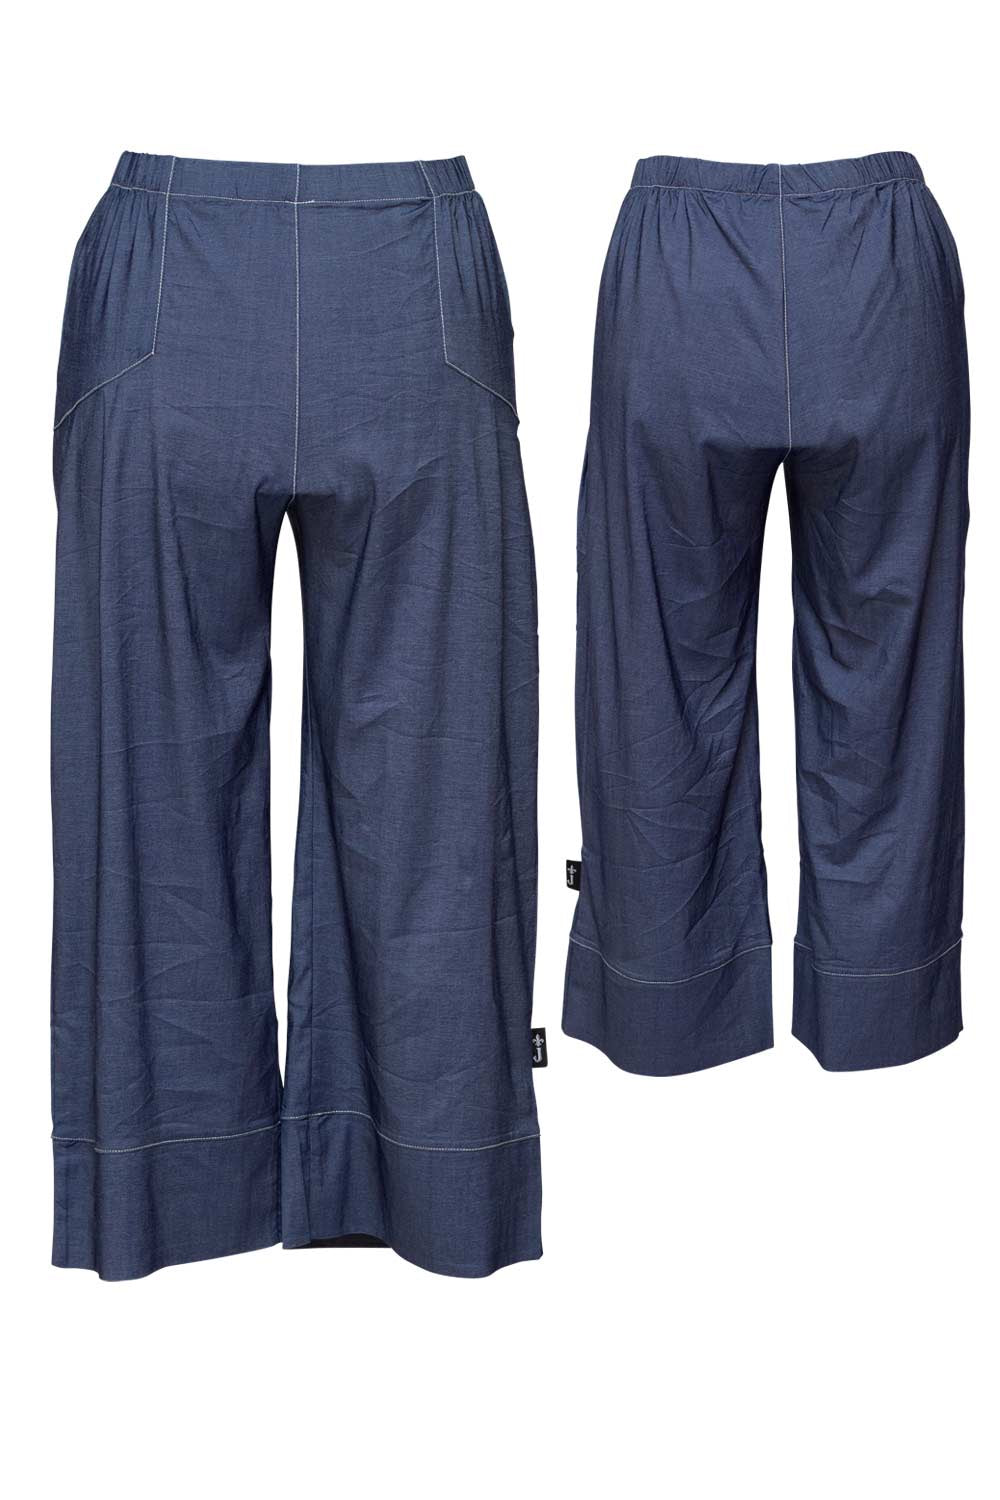 jellicoe-walk-the-line-pant